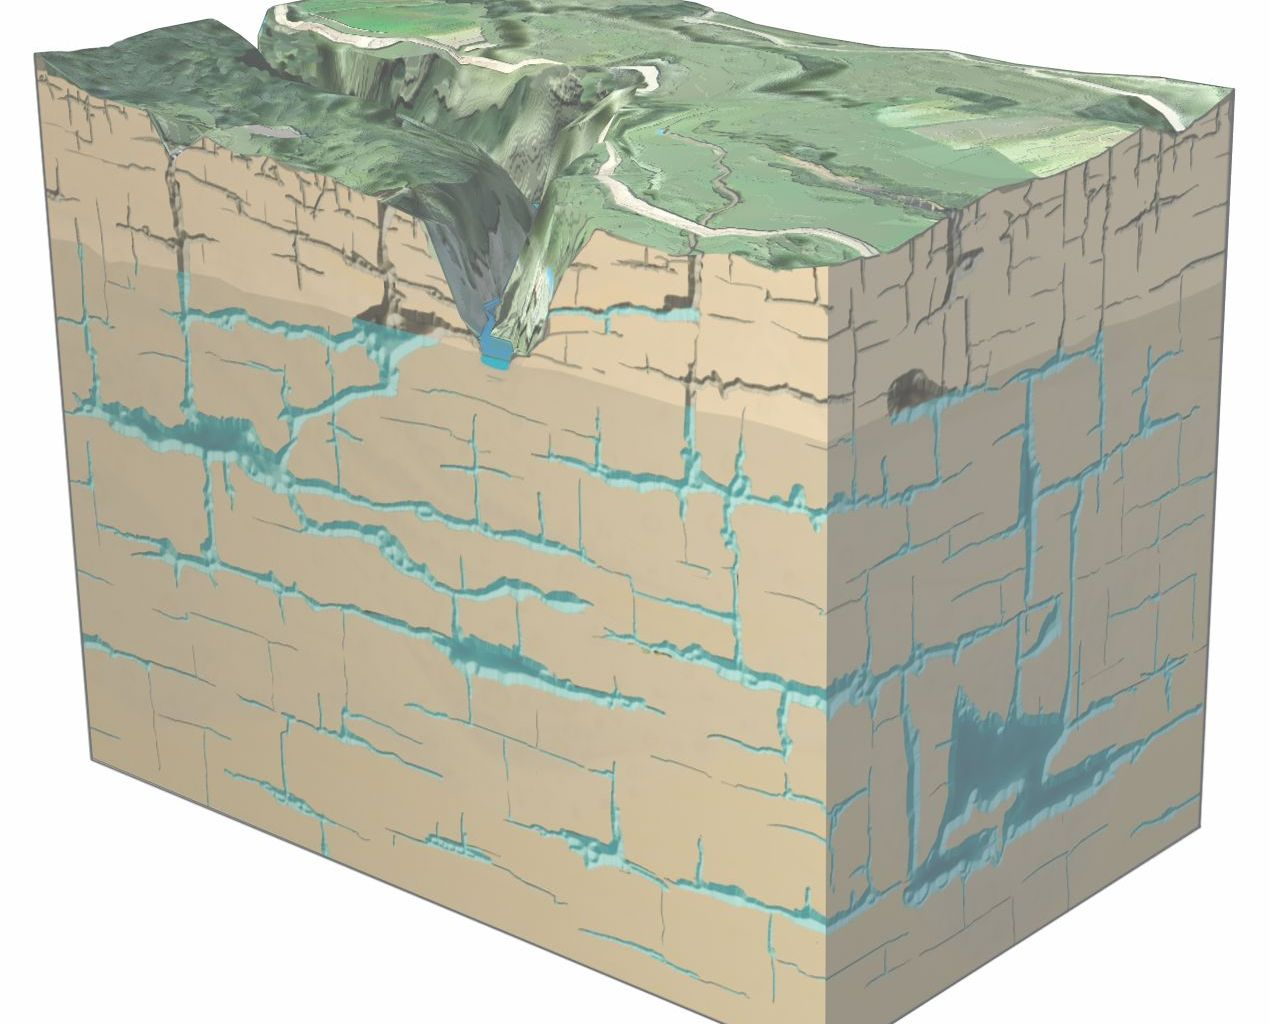 Karstified aquifers